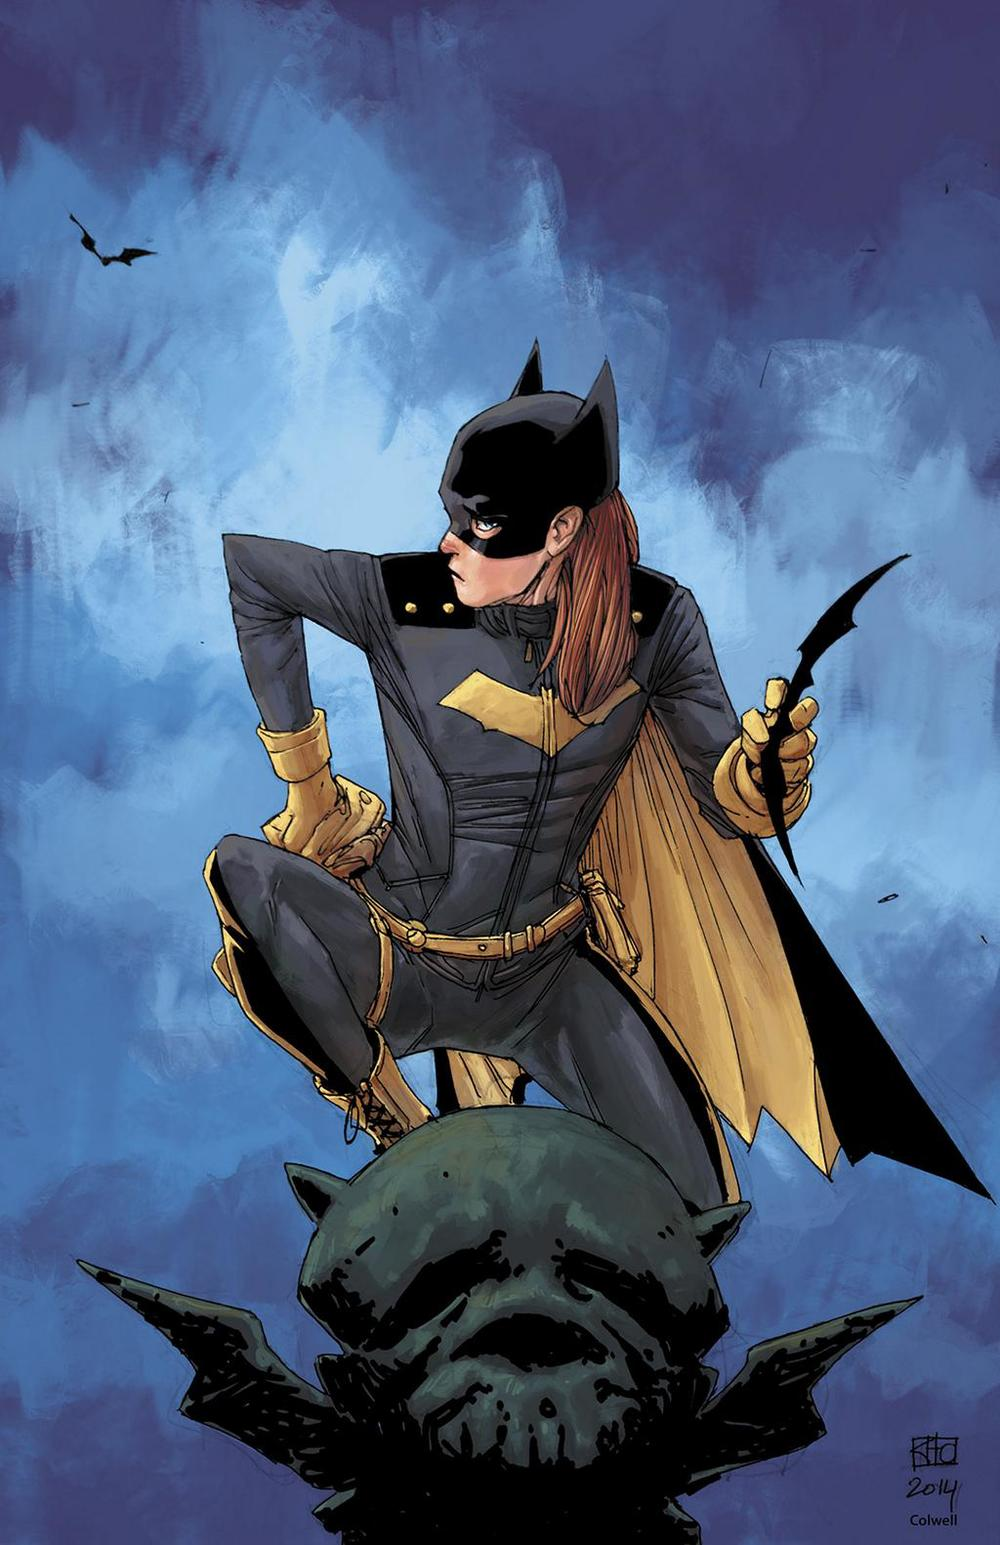 Bat-Girl collaboration between Ten Ton Officers Khoi Pham and Jeremy Colwell